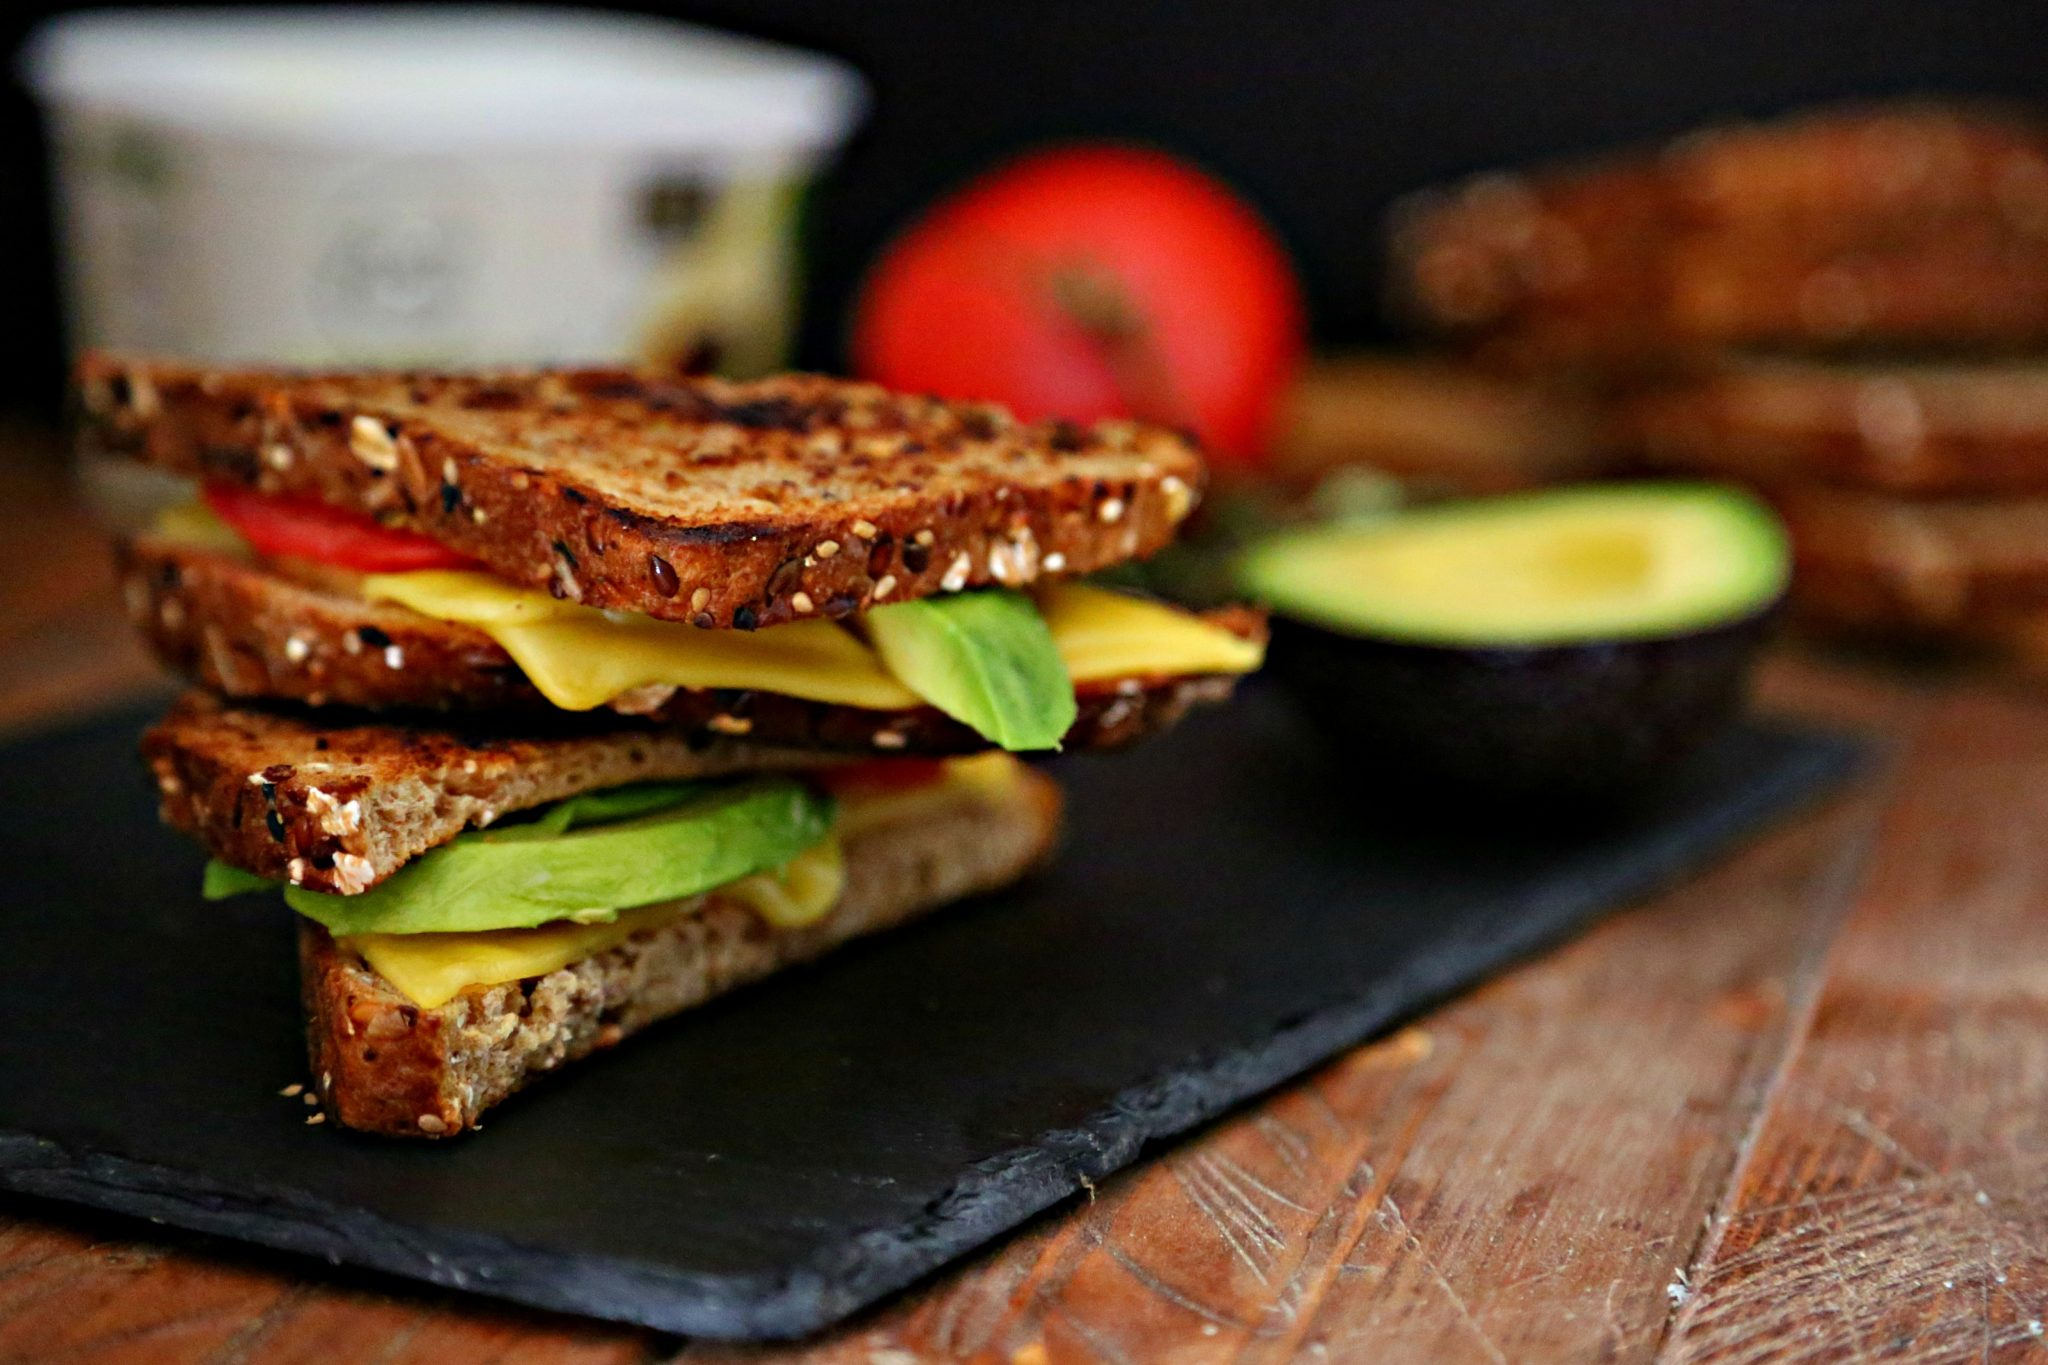 Avocado and Tomato Vegan Grilled Cheese on slate with tomato, butter and avocado surrounding.